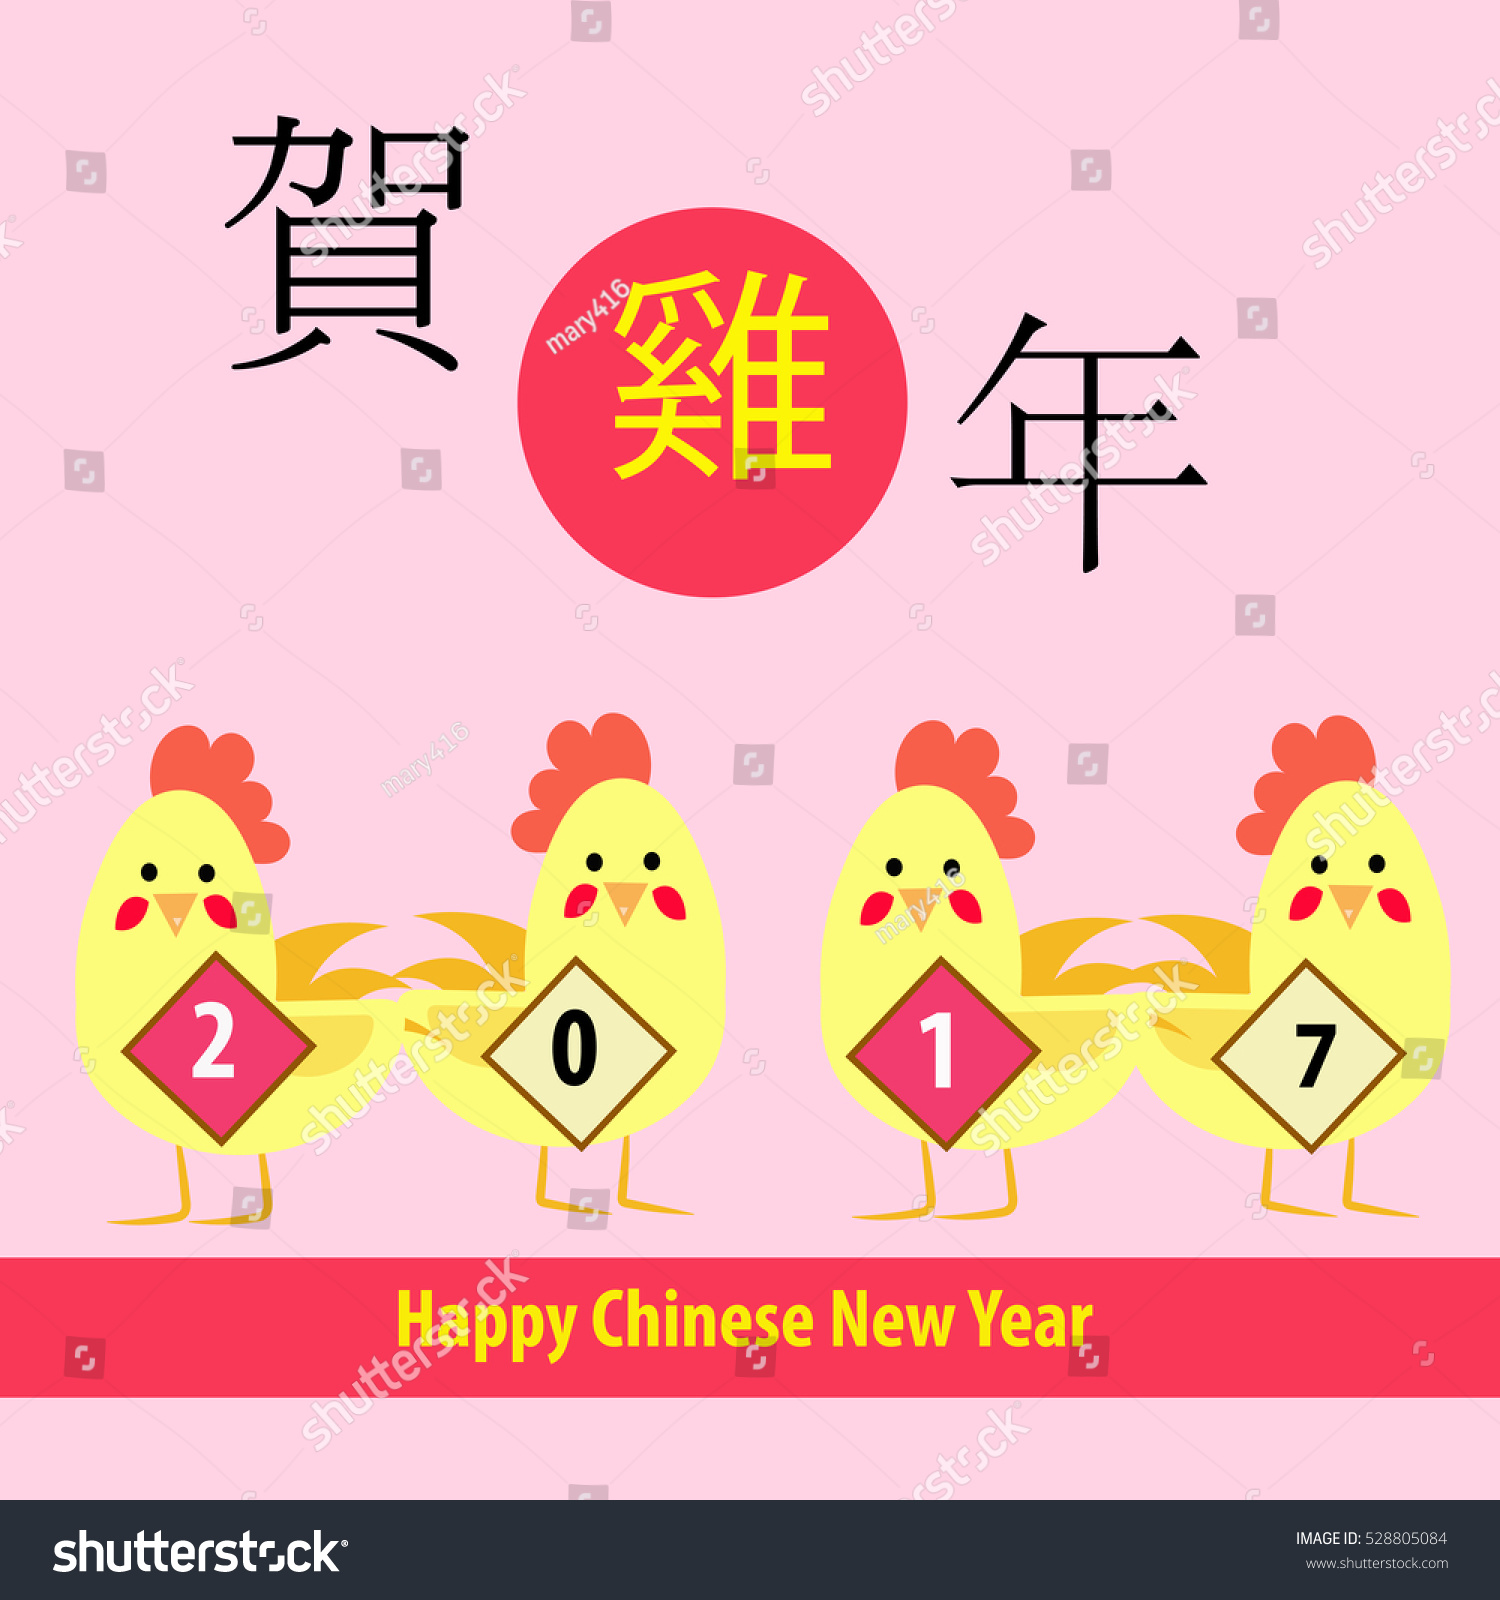 25 Best Chinese New Year Greetings Cantonese